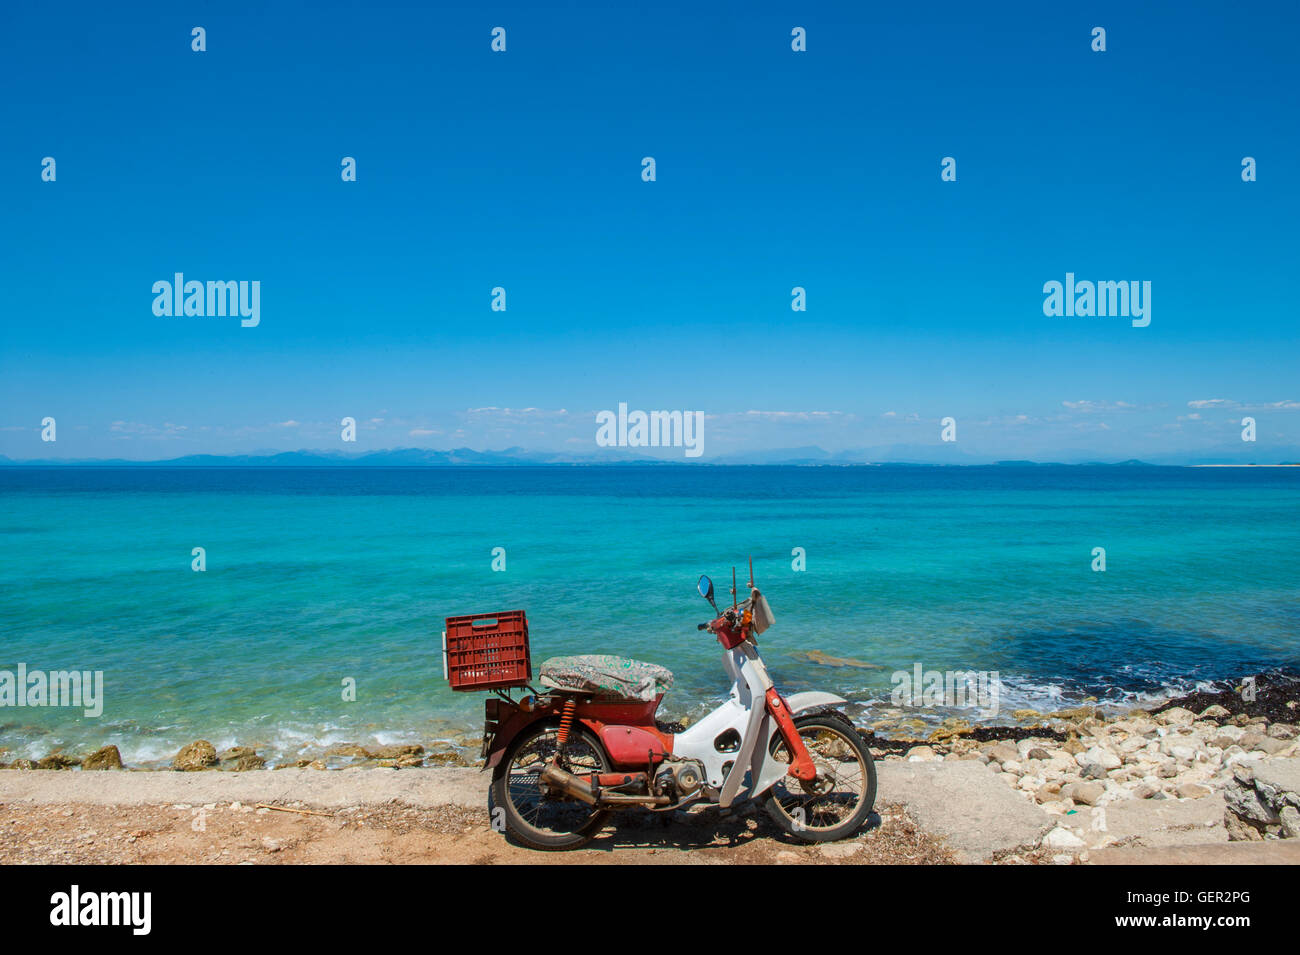 A lone, old moped on a deserted beach in Greece - Stock Image